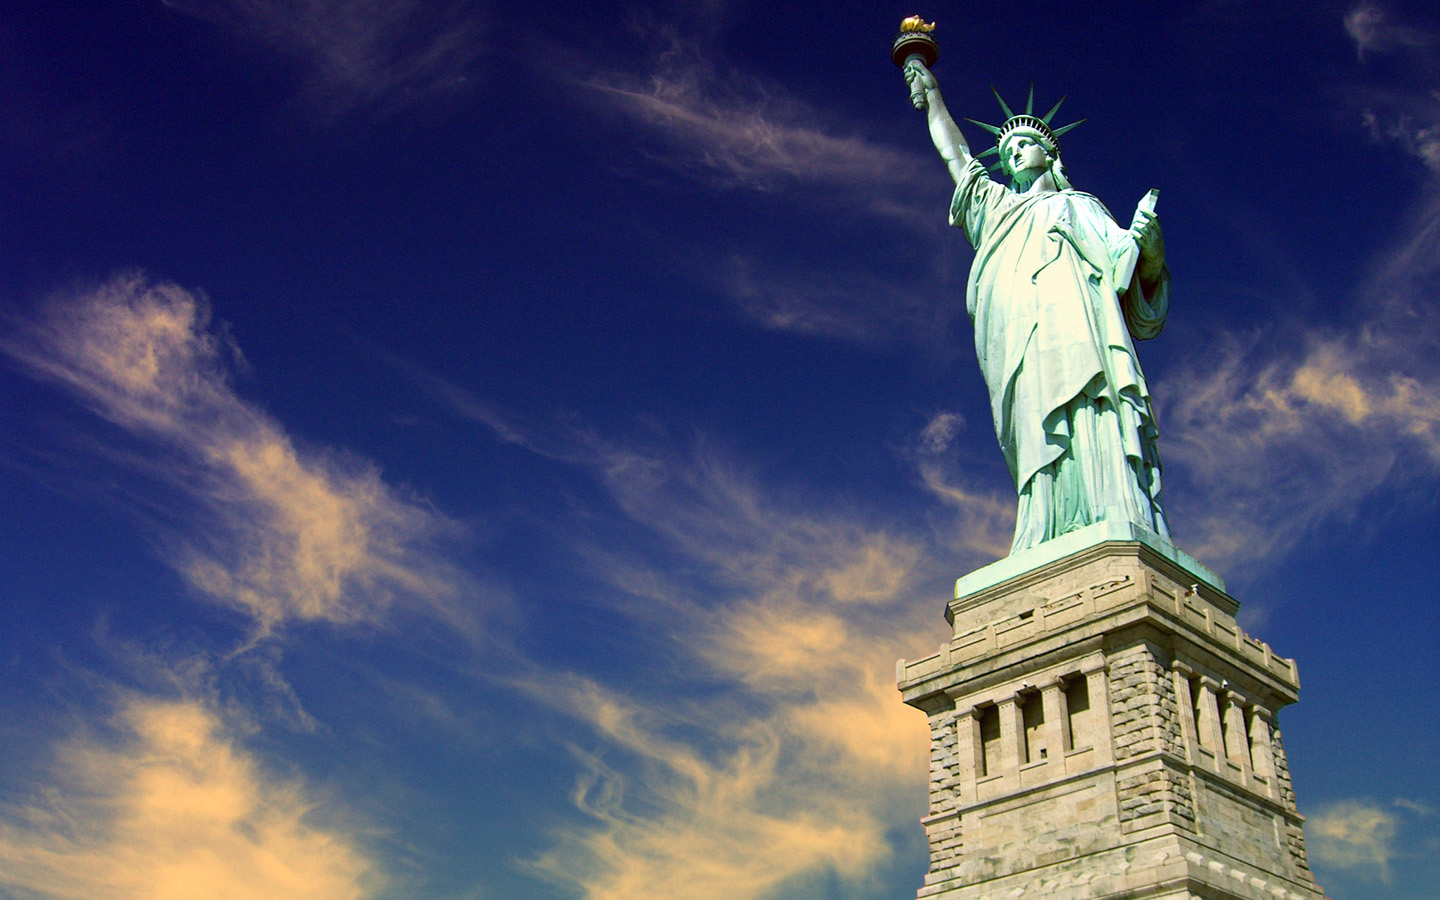 Download Statue Of Liberty Pictures 38292 1440x900 Px High